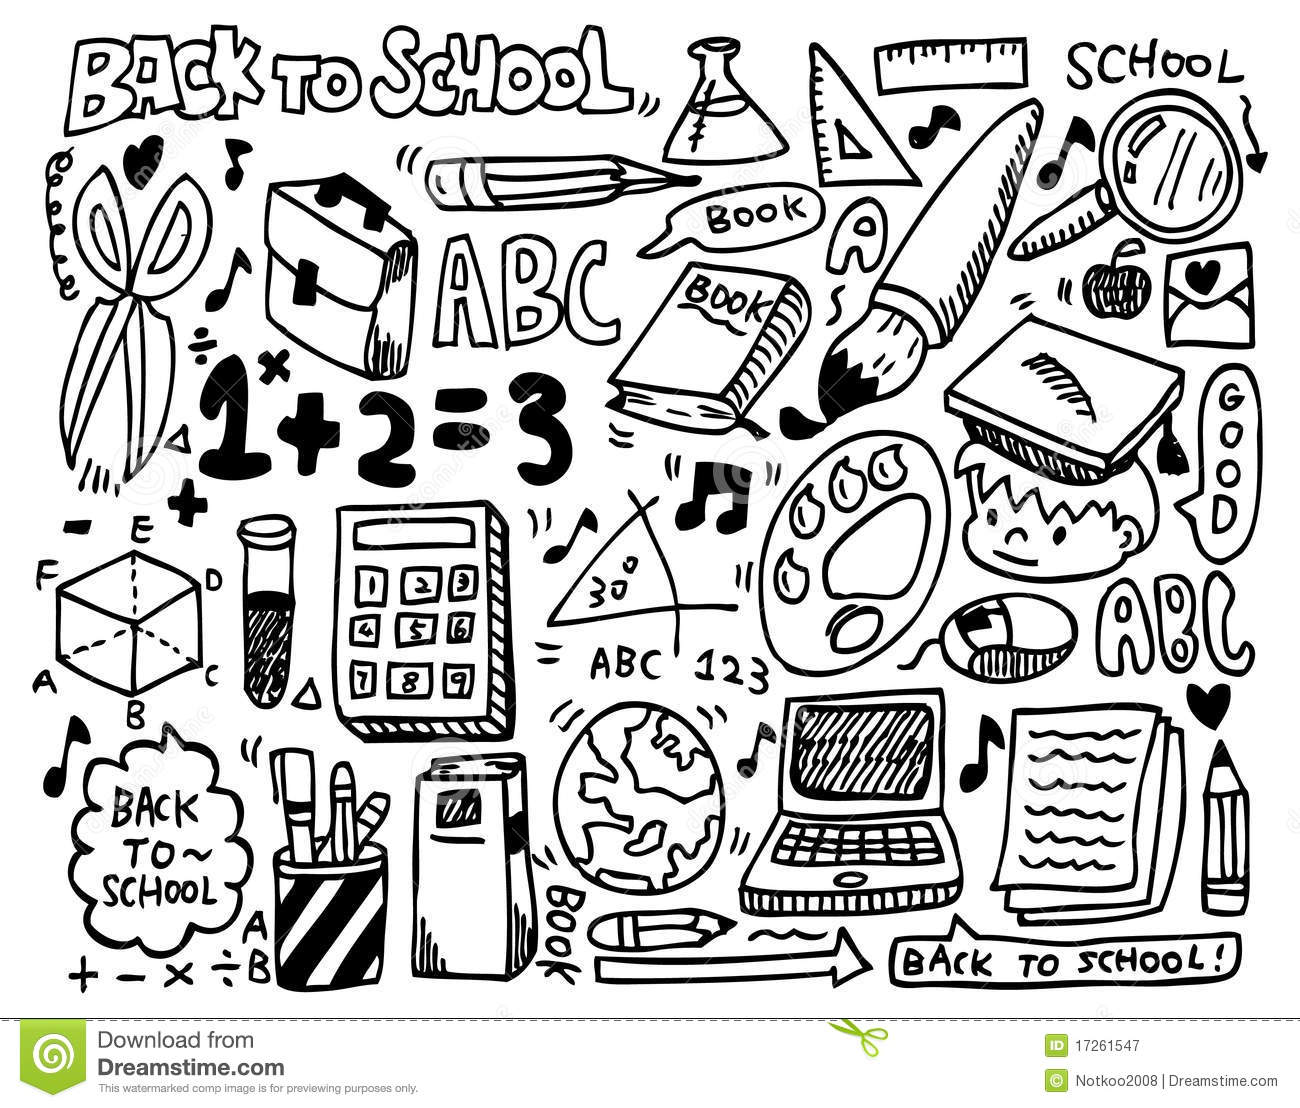 Doodle school royalty free stock photography image 17261547